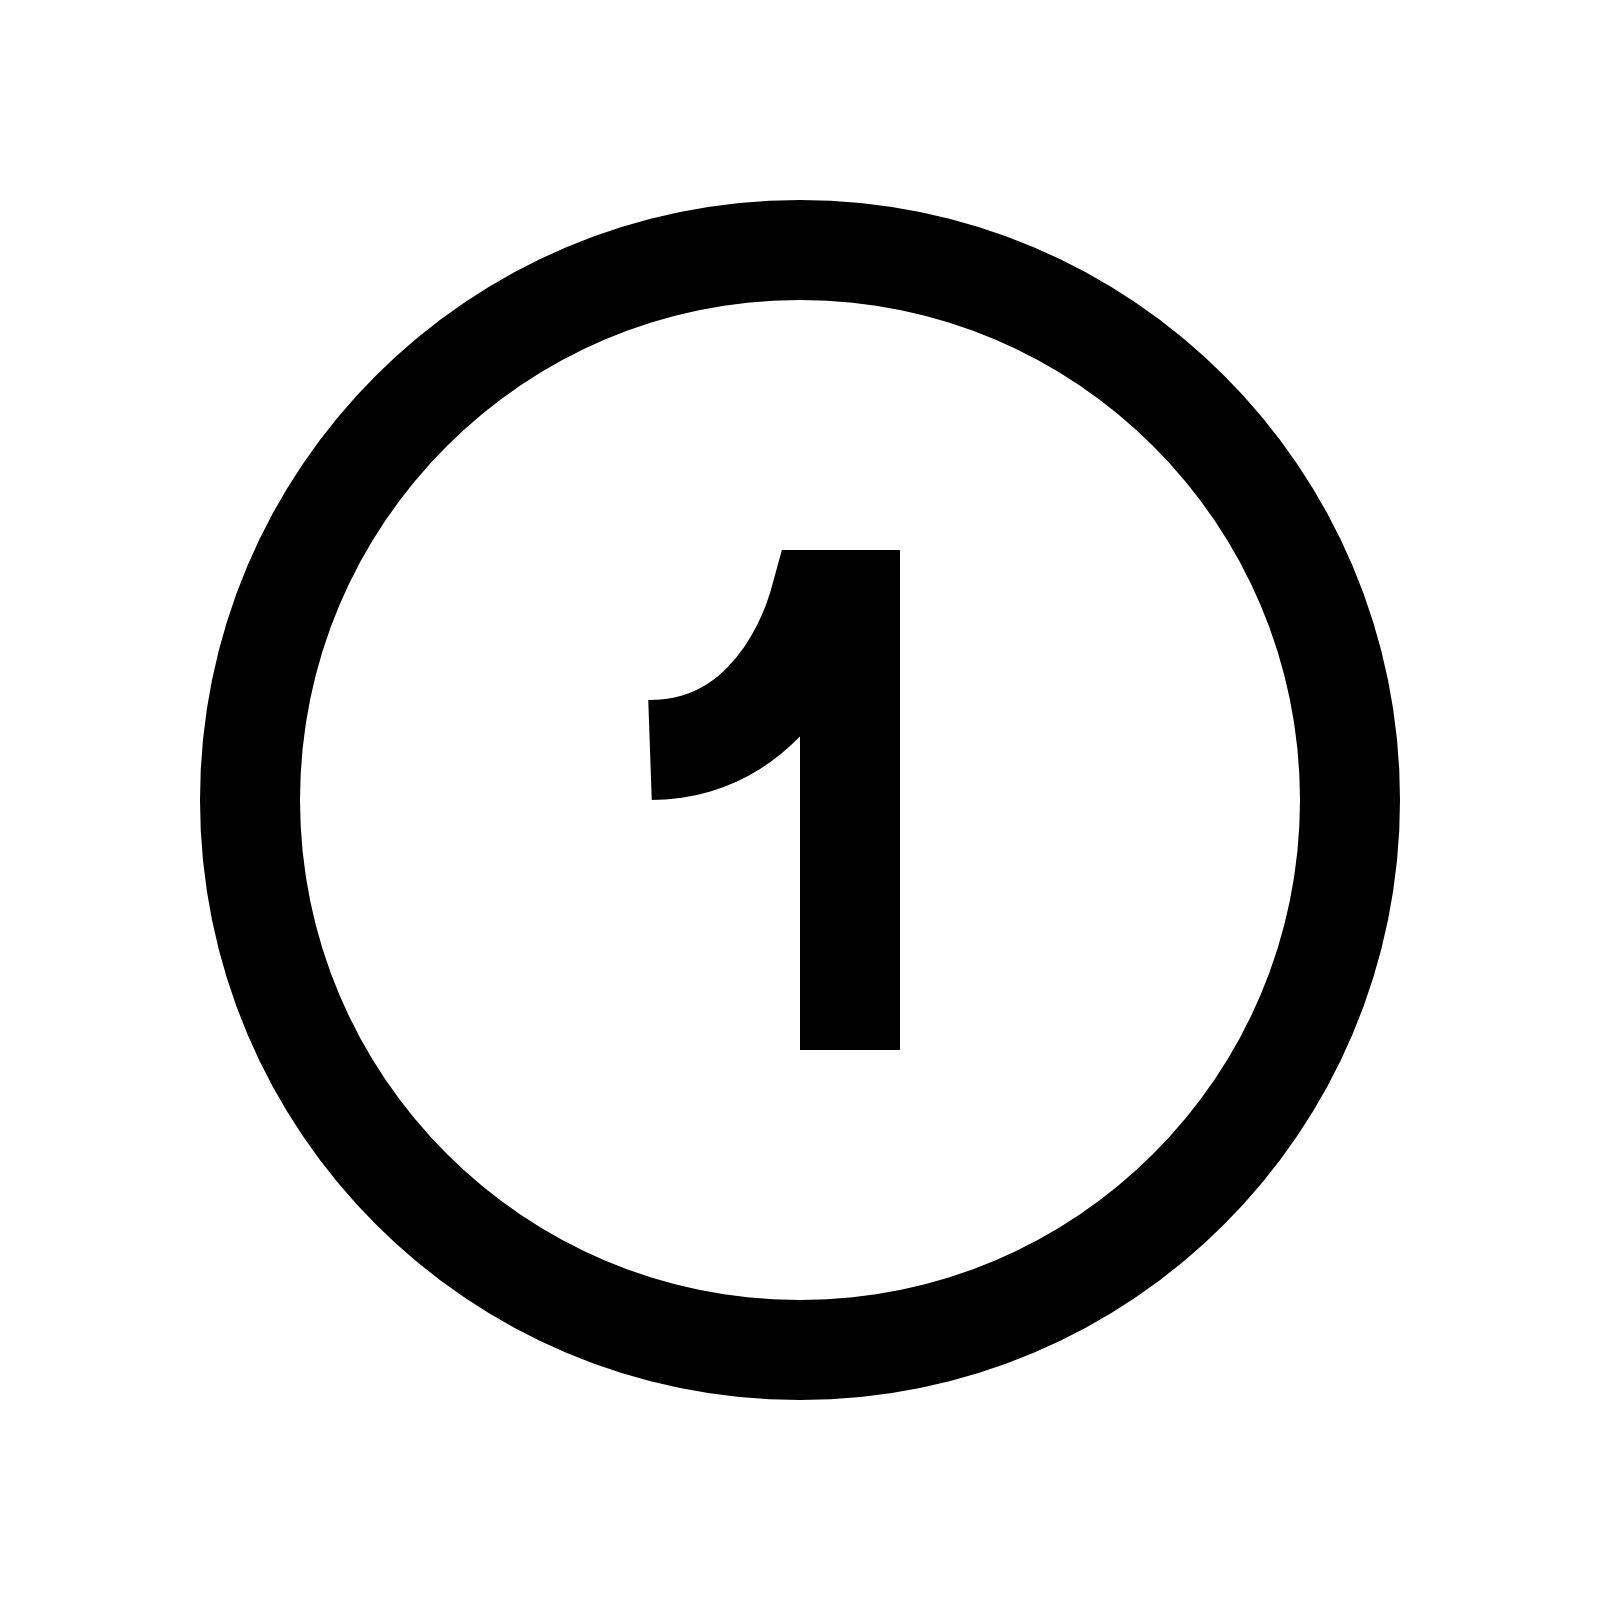 1icon8.png